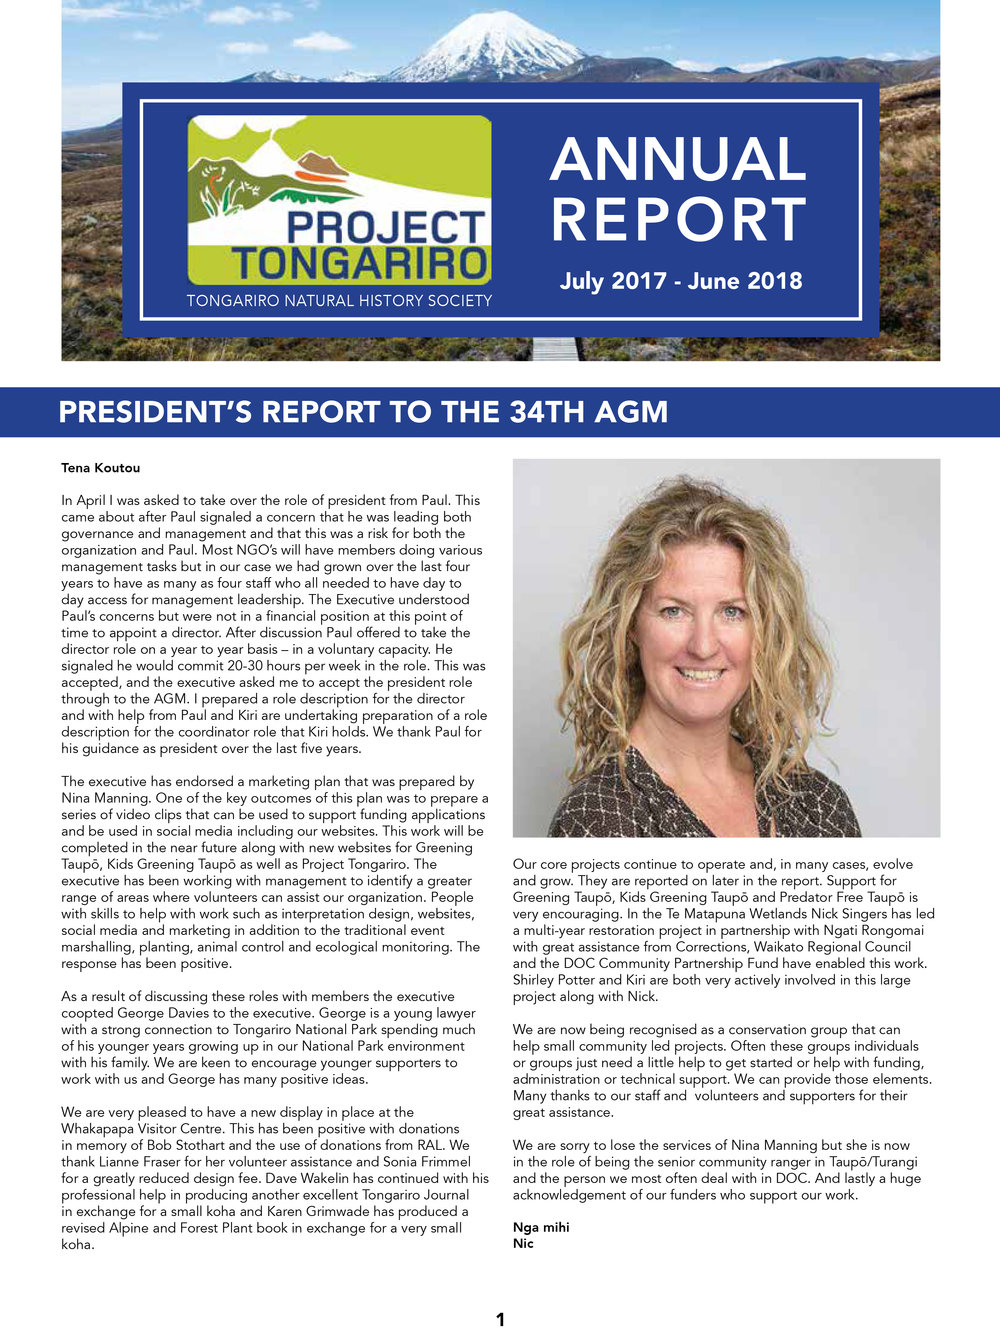 Project Tongariro Annual Report 211018 COVER.jpg